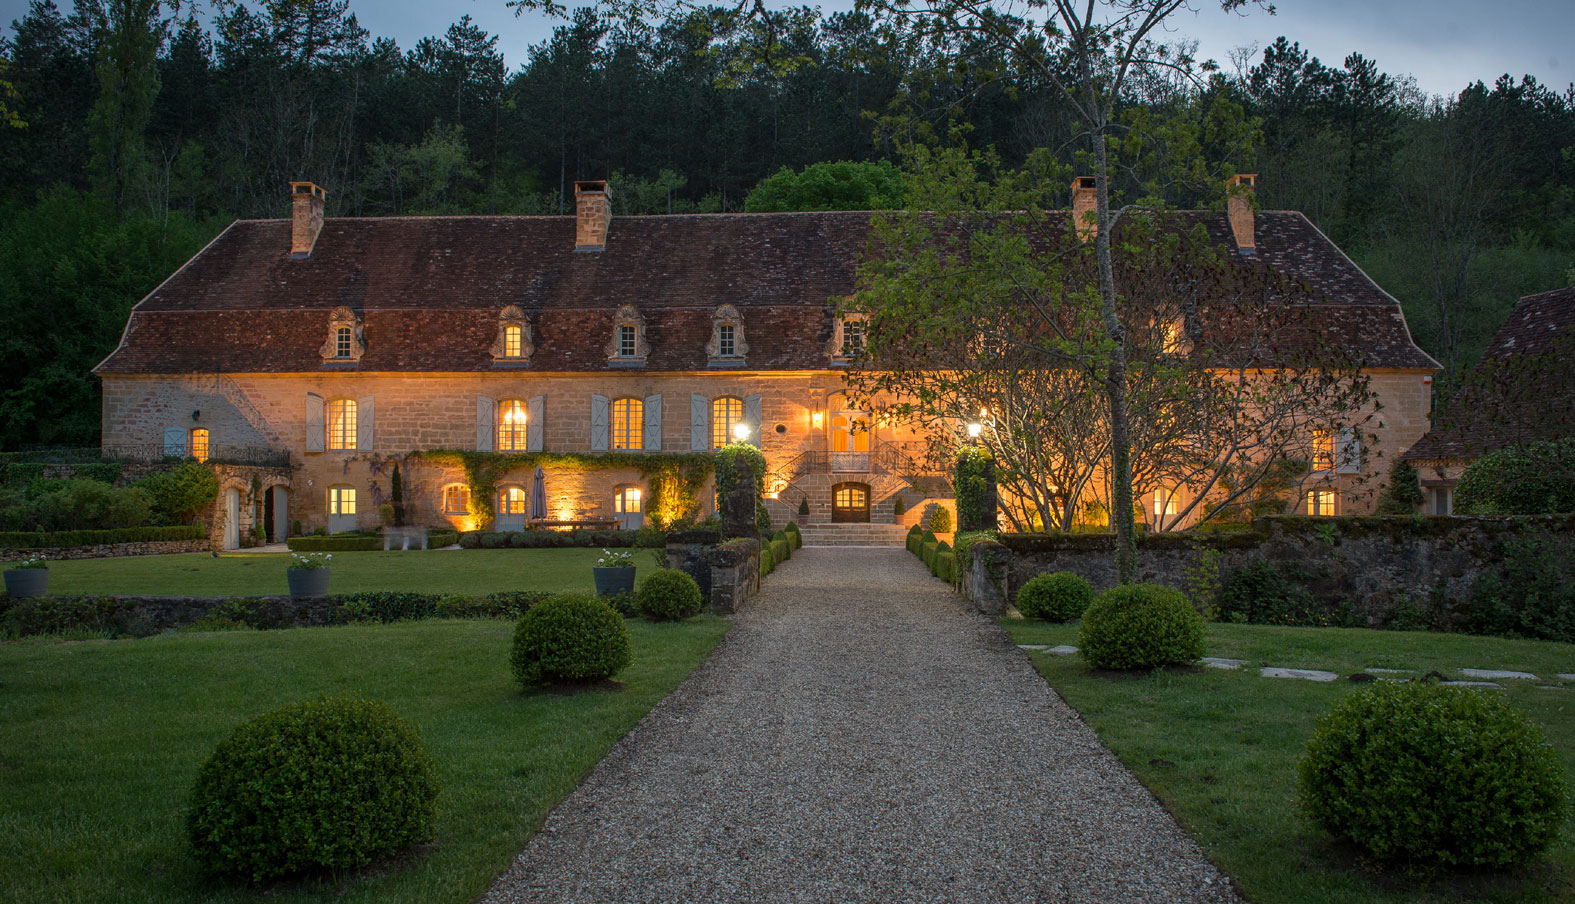 This magnificent 17th-century estate in the Dordogne region of France shines amid 182 acres of verdant parkland; adding to the splendor are several dwellings, a pool, fishing pond, and stream.